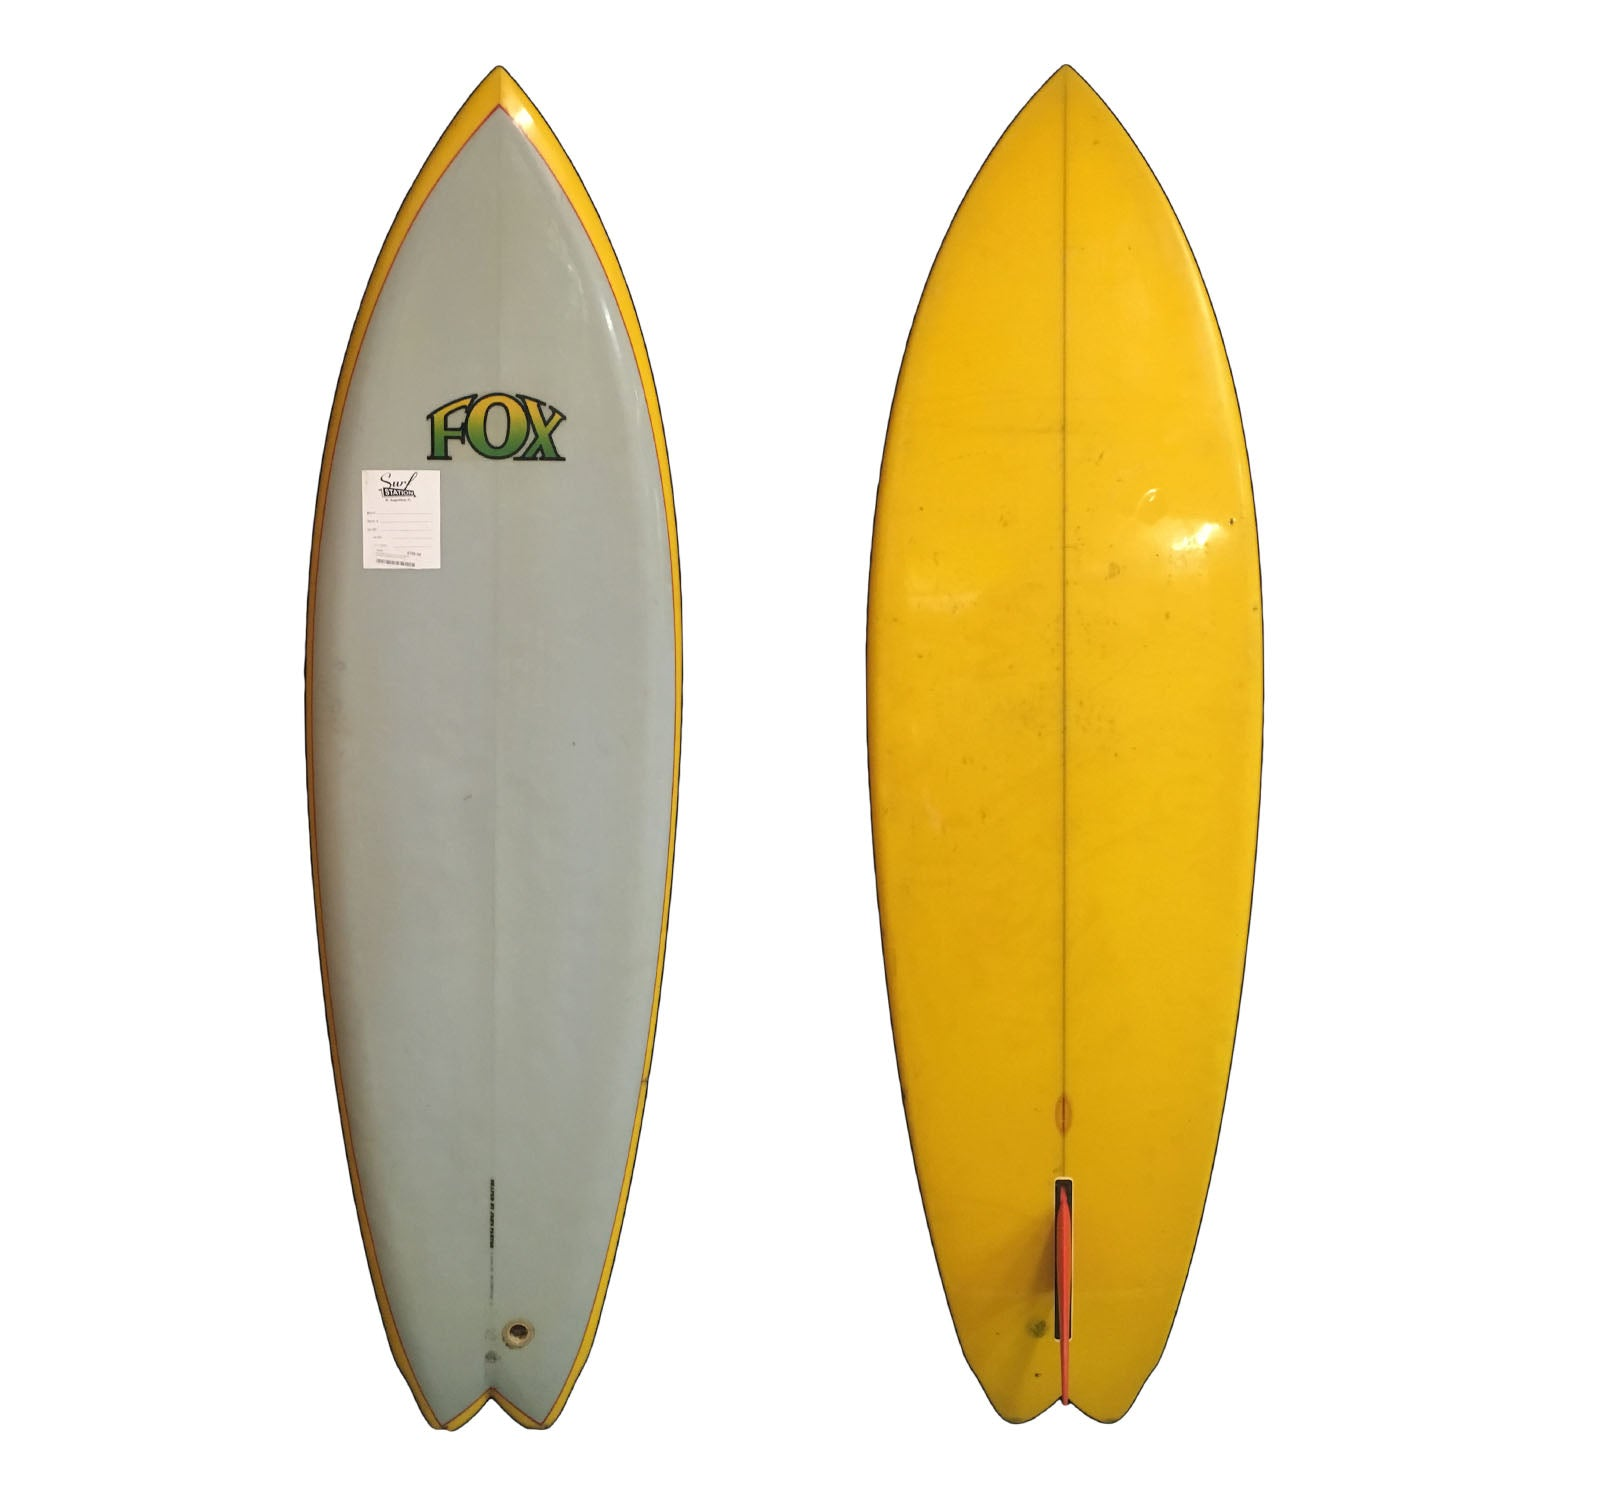 Fox Single Fin 6'2 Collector Surfboard